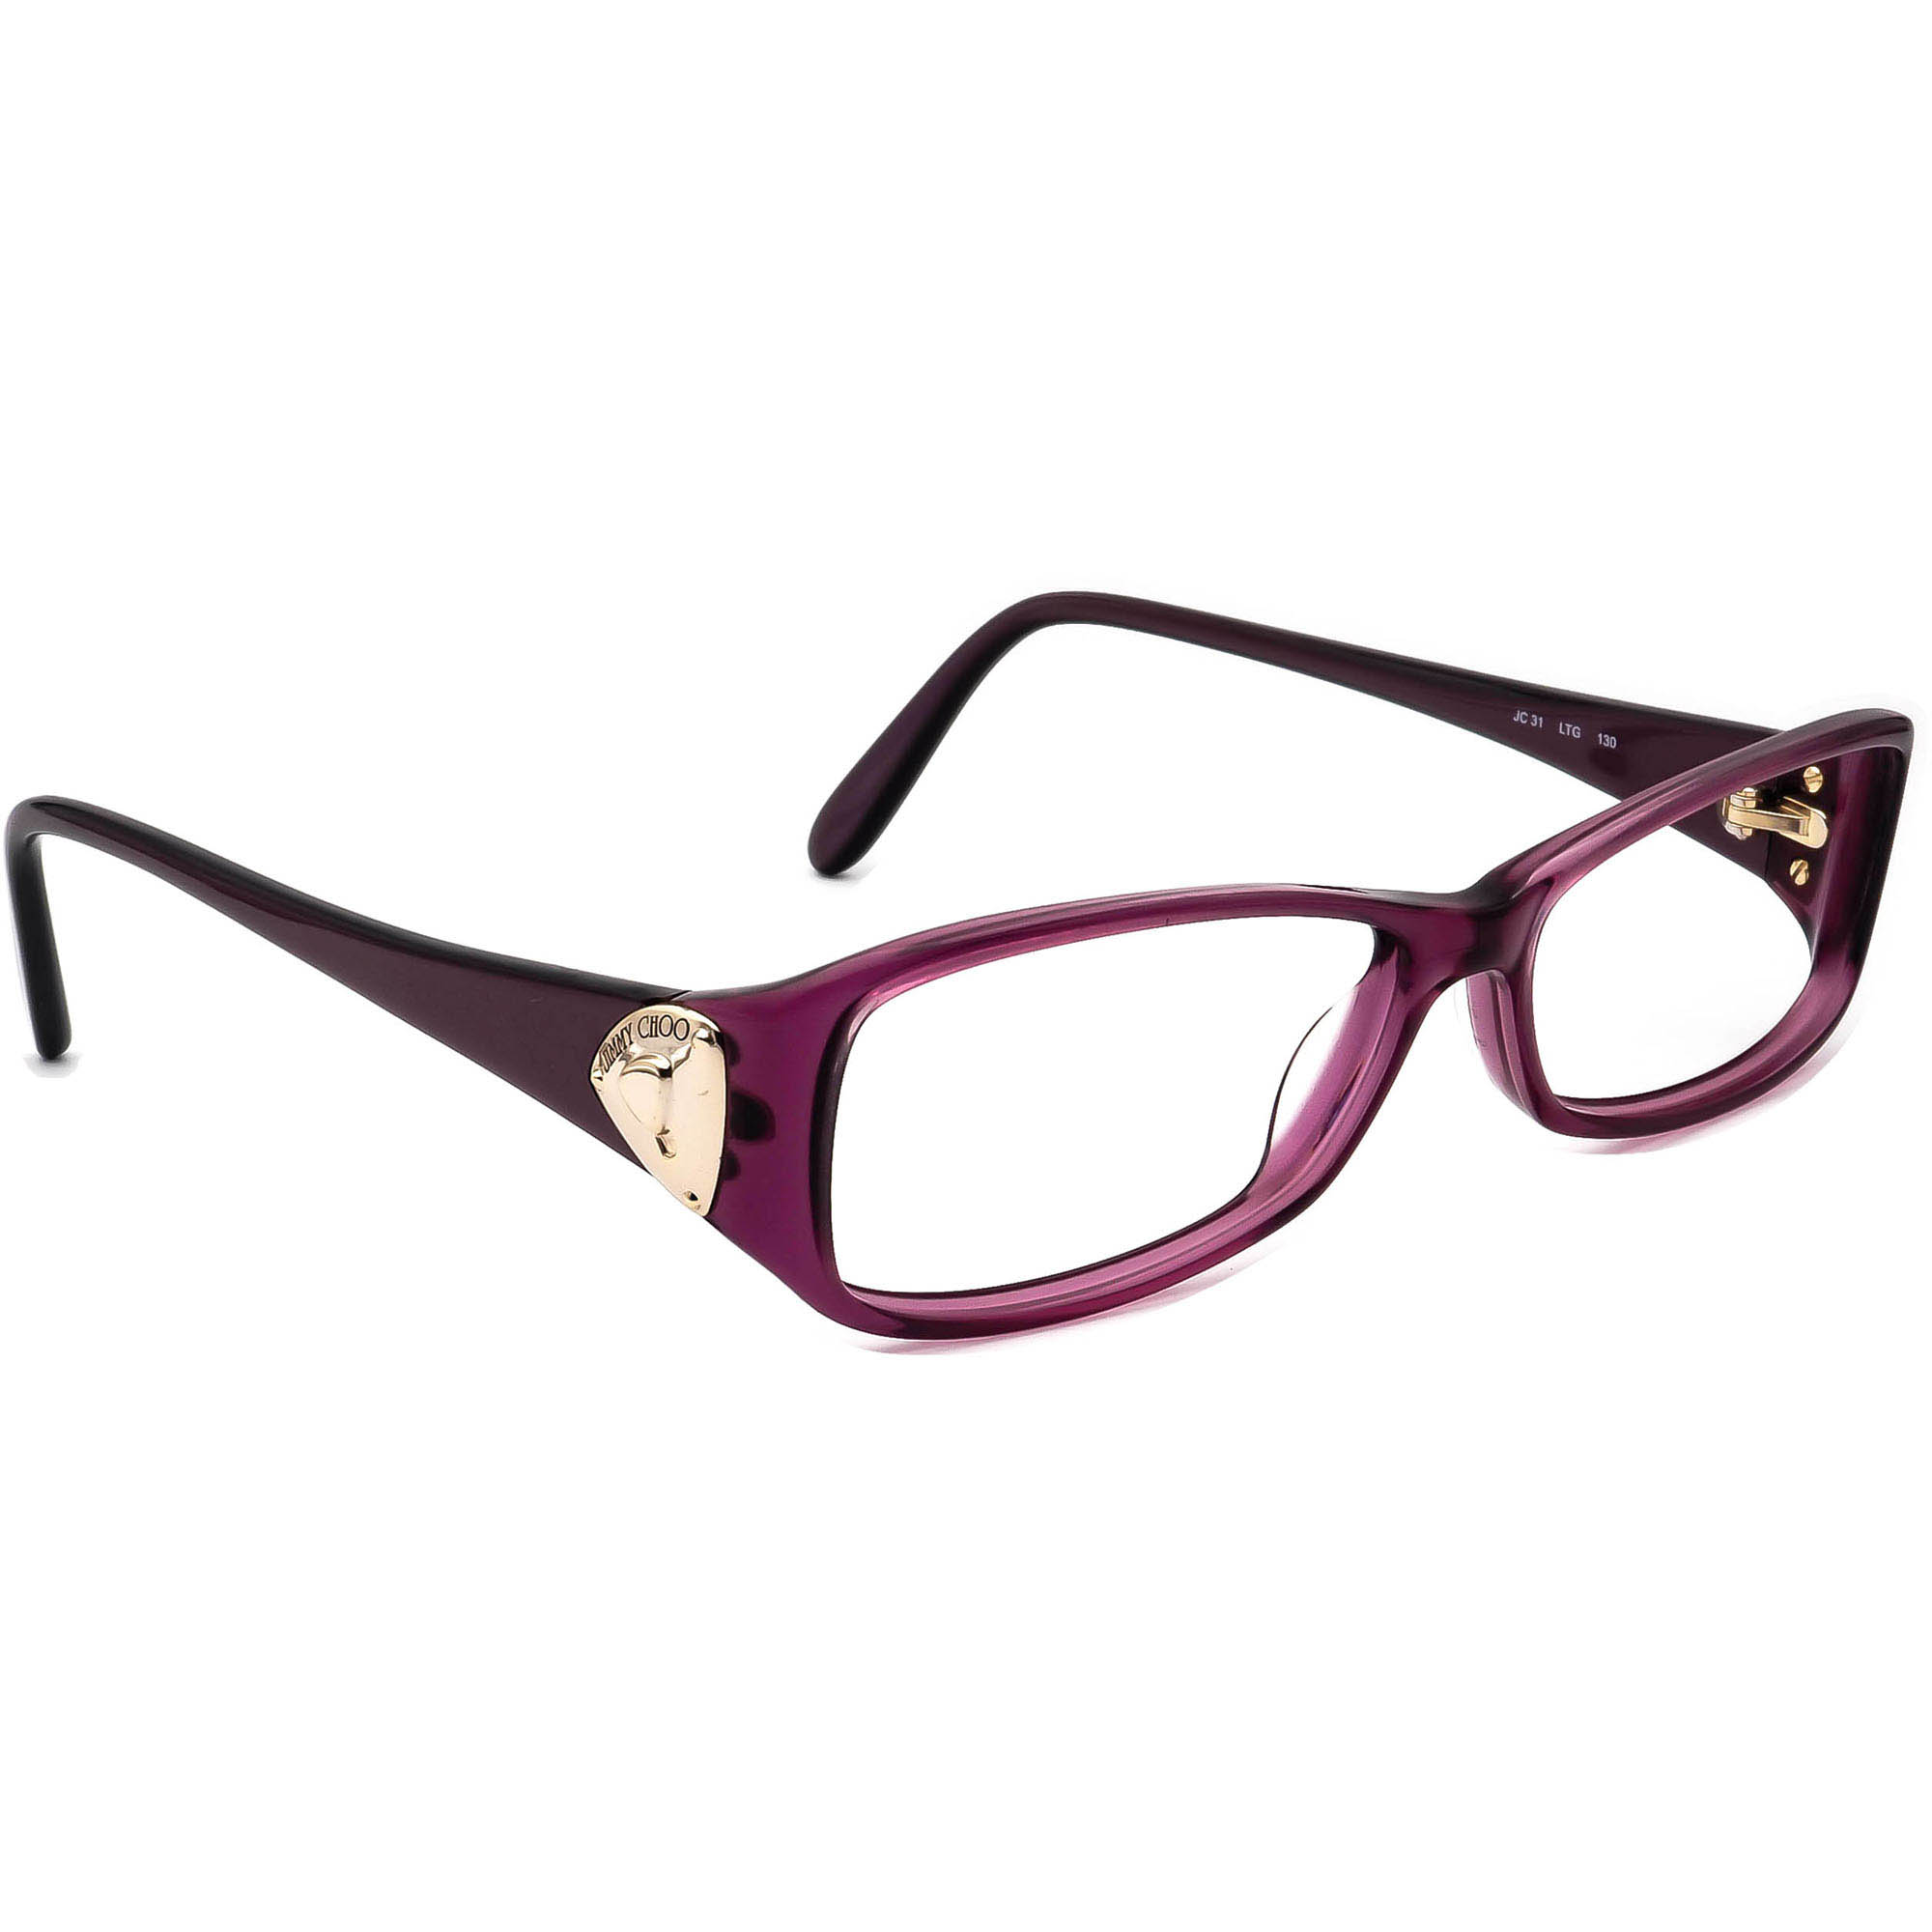 Jimmy Choo JC 31 LTG Eyeglasses